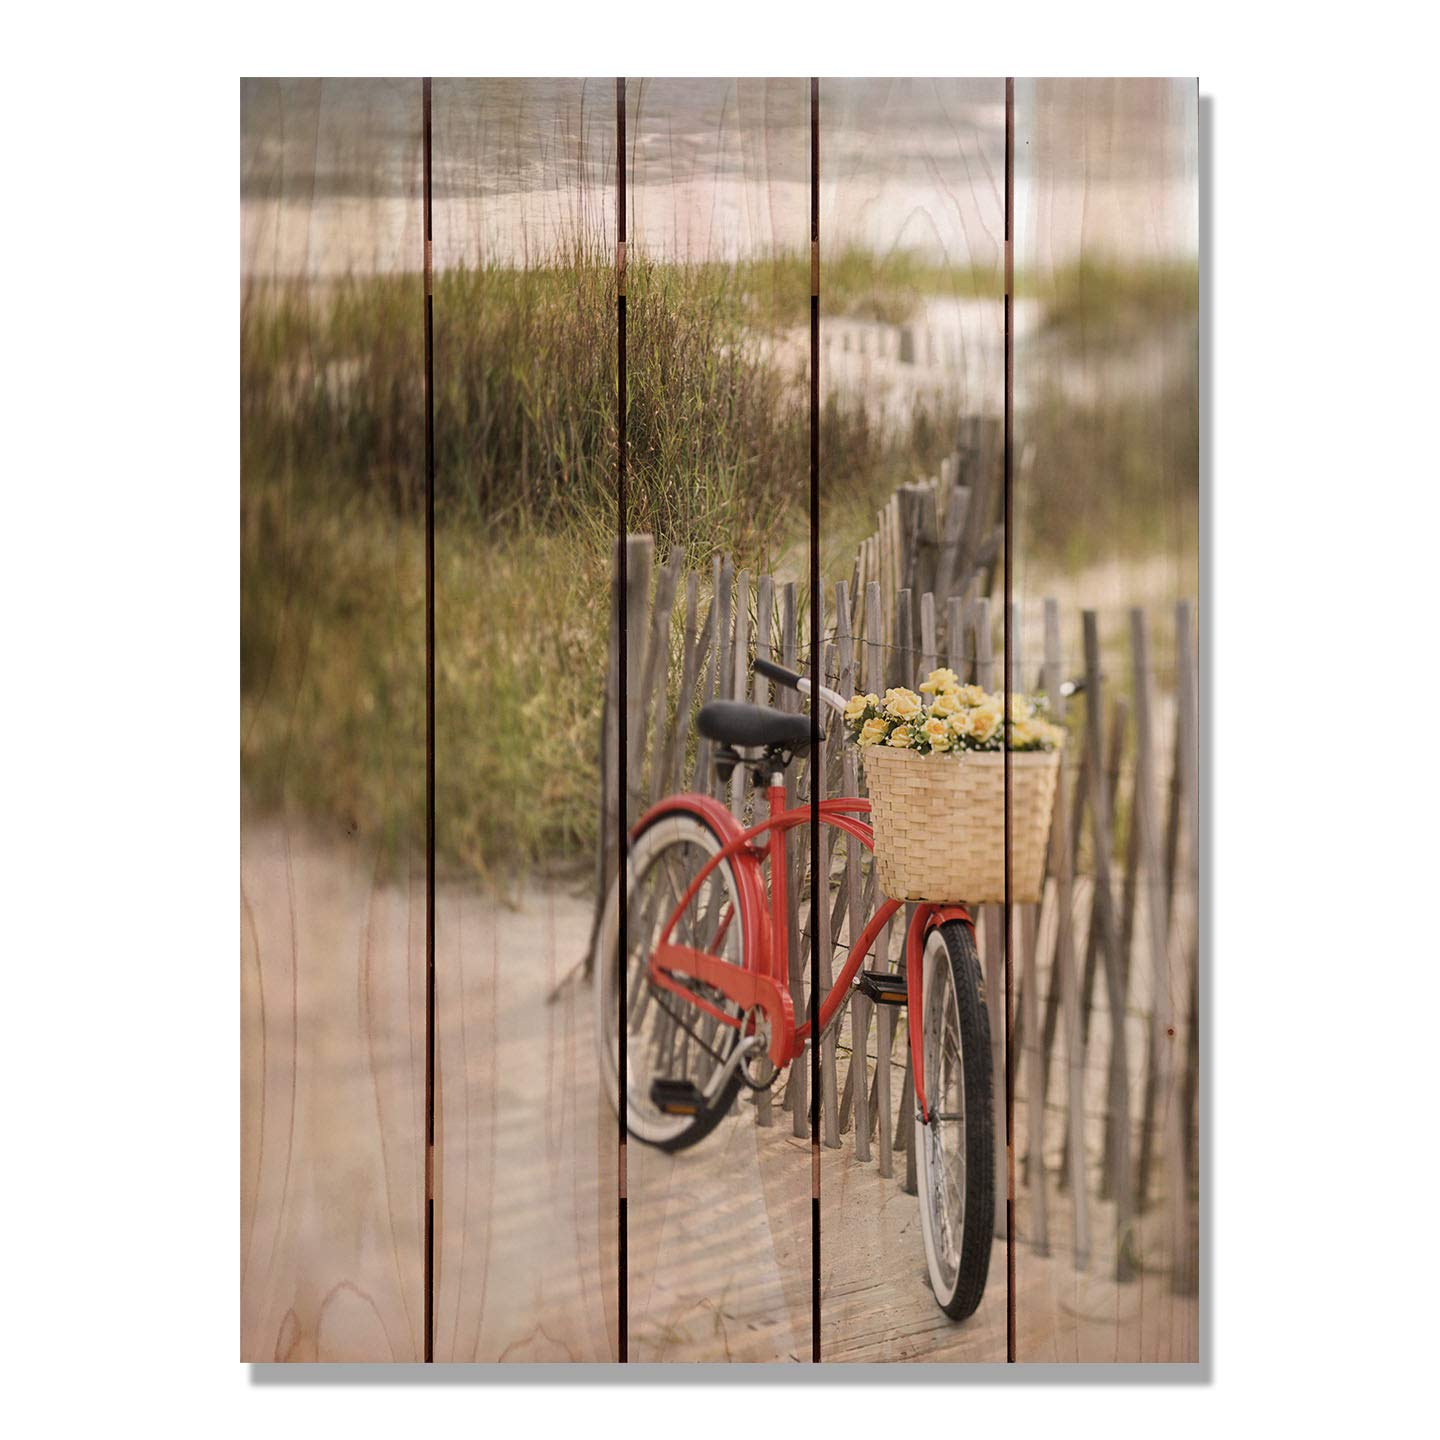 Gizaun Art SED2836 Special Delivery 28-Inch by 36-Inch Wall Art, Inside/Outside, Full Color Cedar